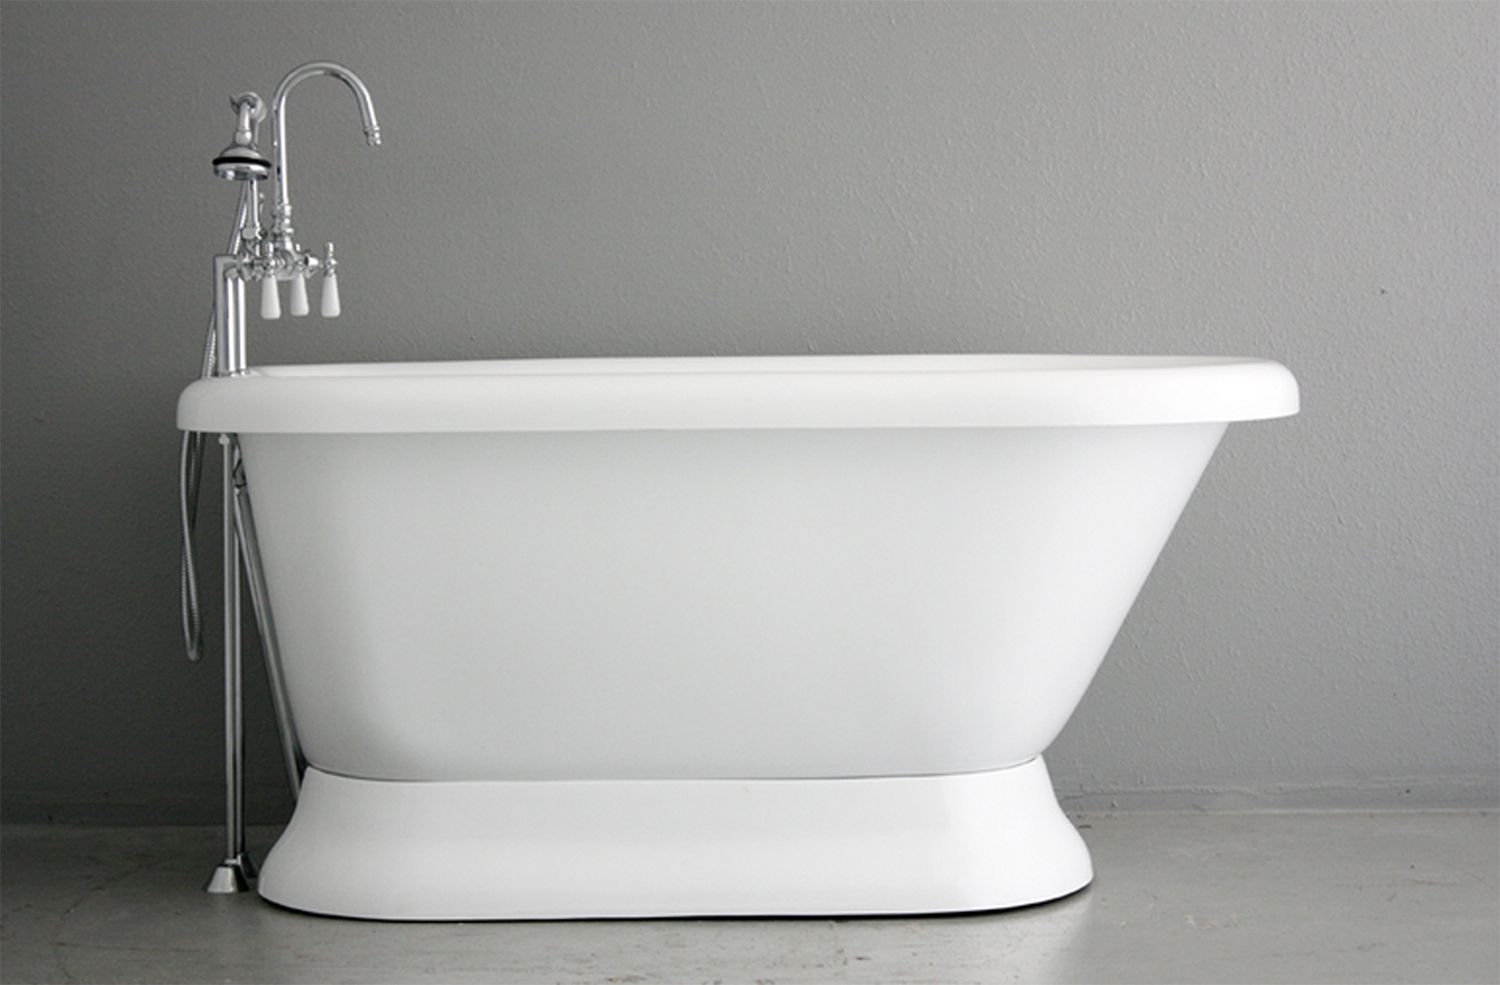 Claw Foot Tubs To Fit Your Space And Budget